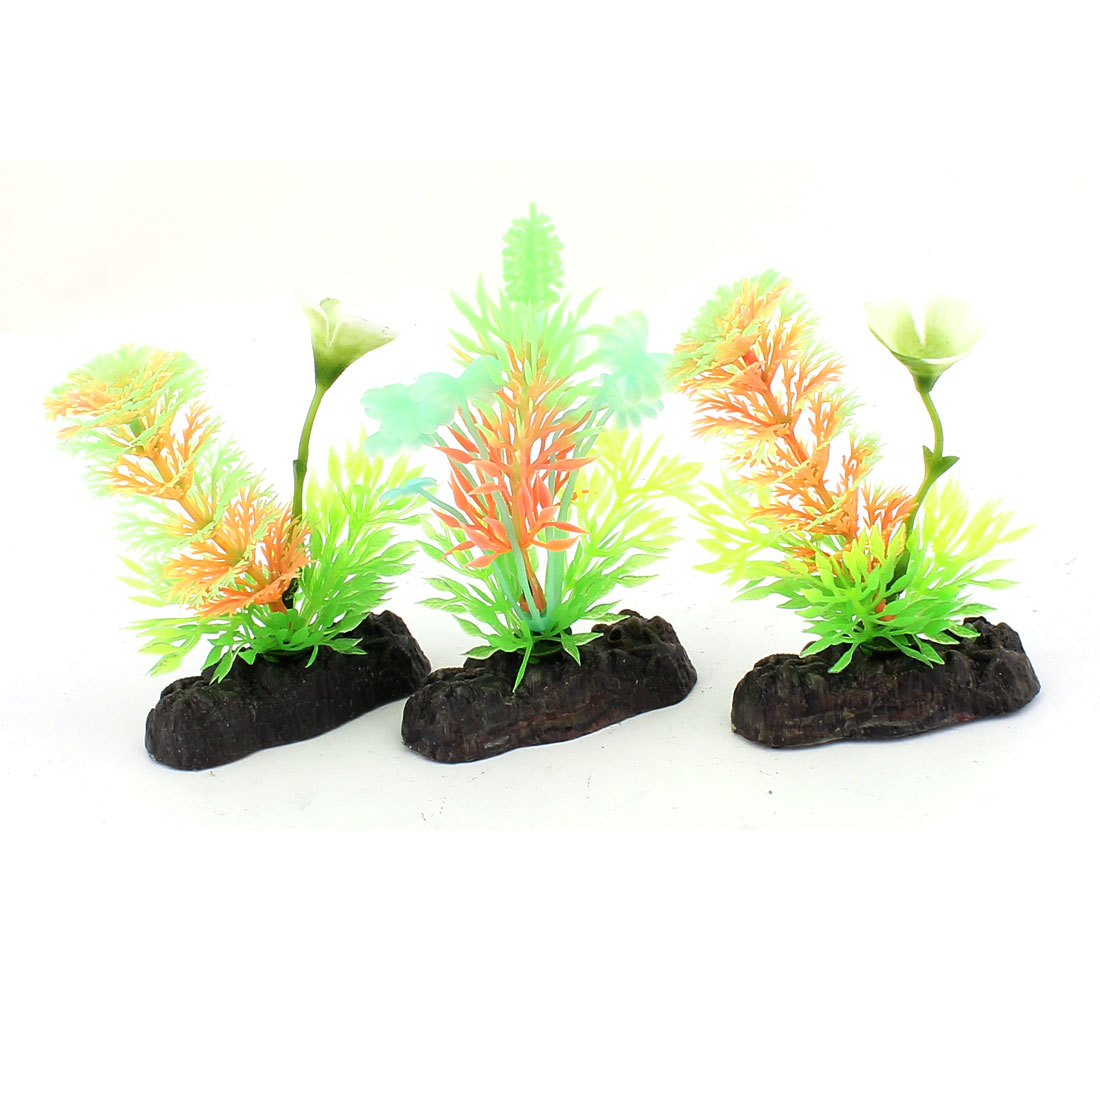 Ceramic Base Plastic Sea Weeds Grass Aquarium Plants Decor 3pcs